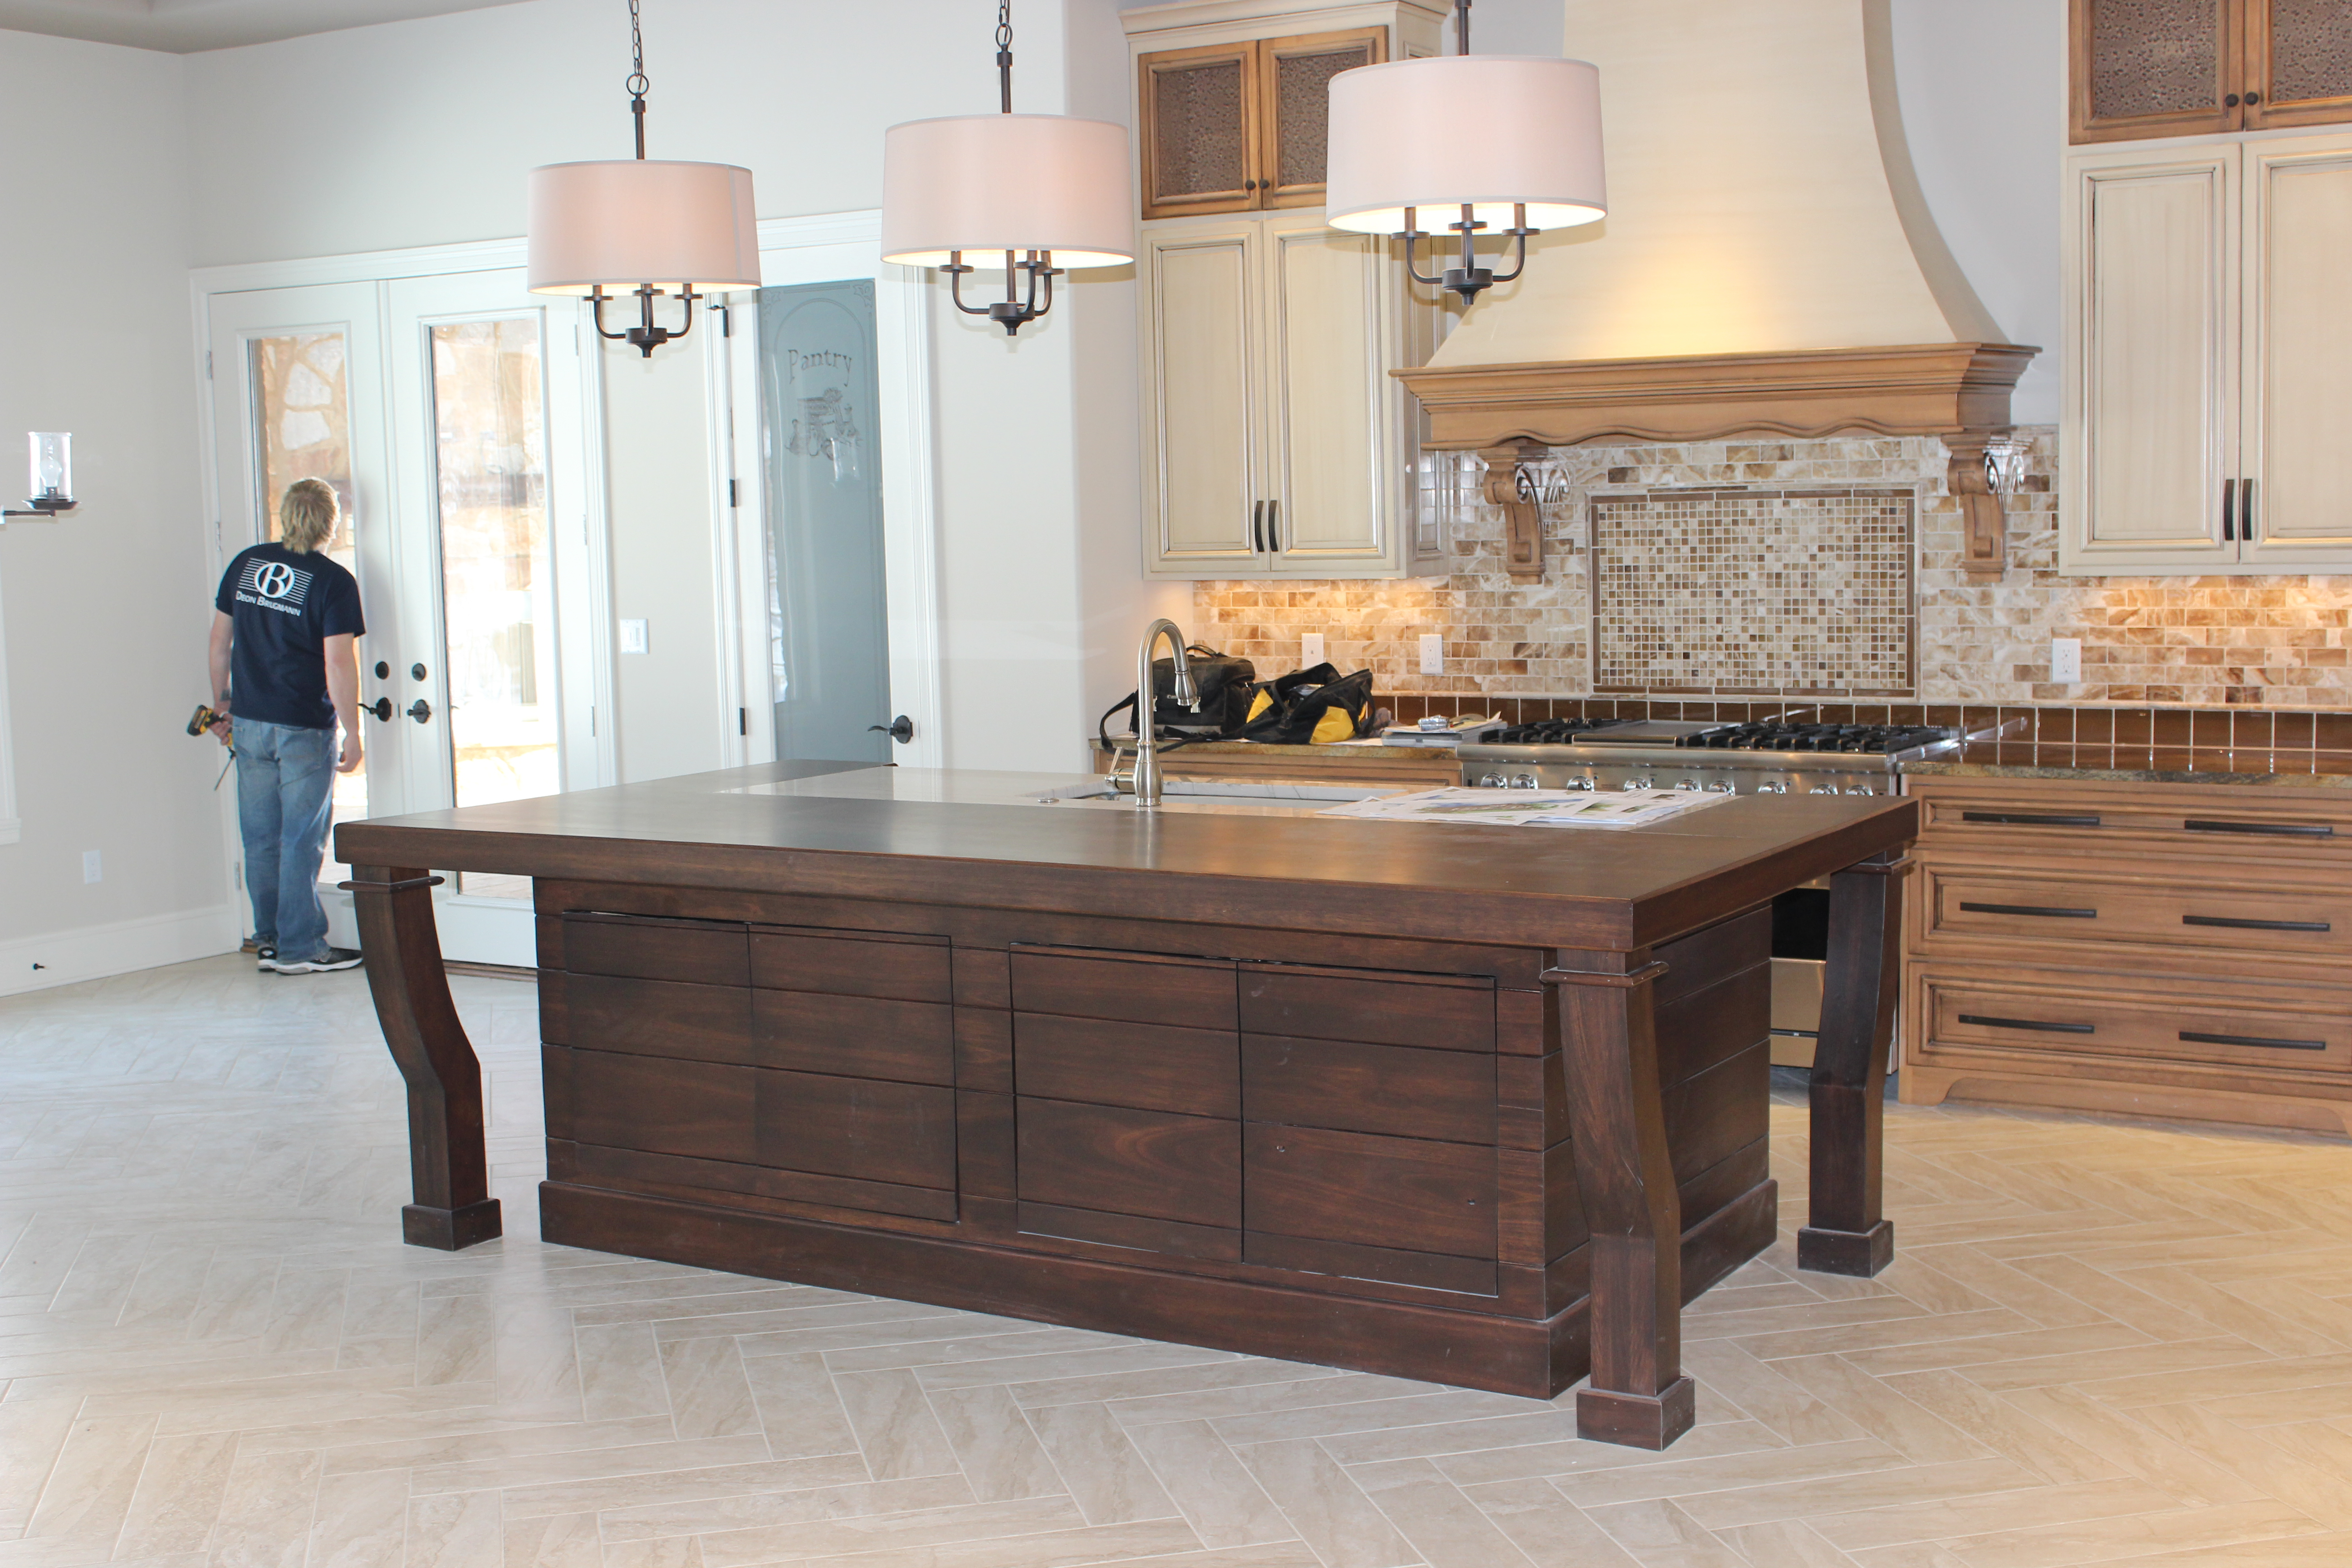 Lyptus custom kitchen island